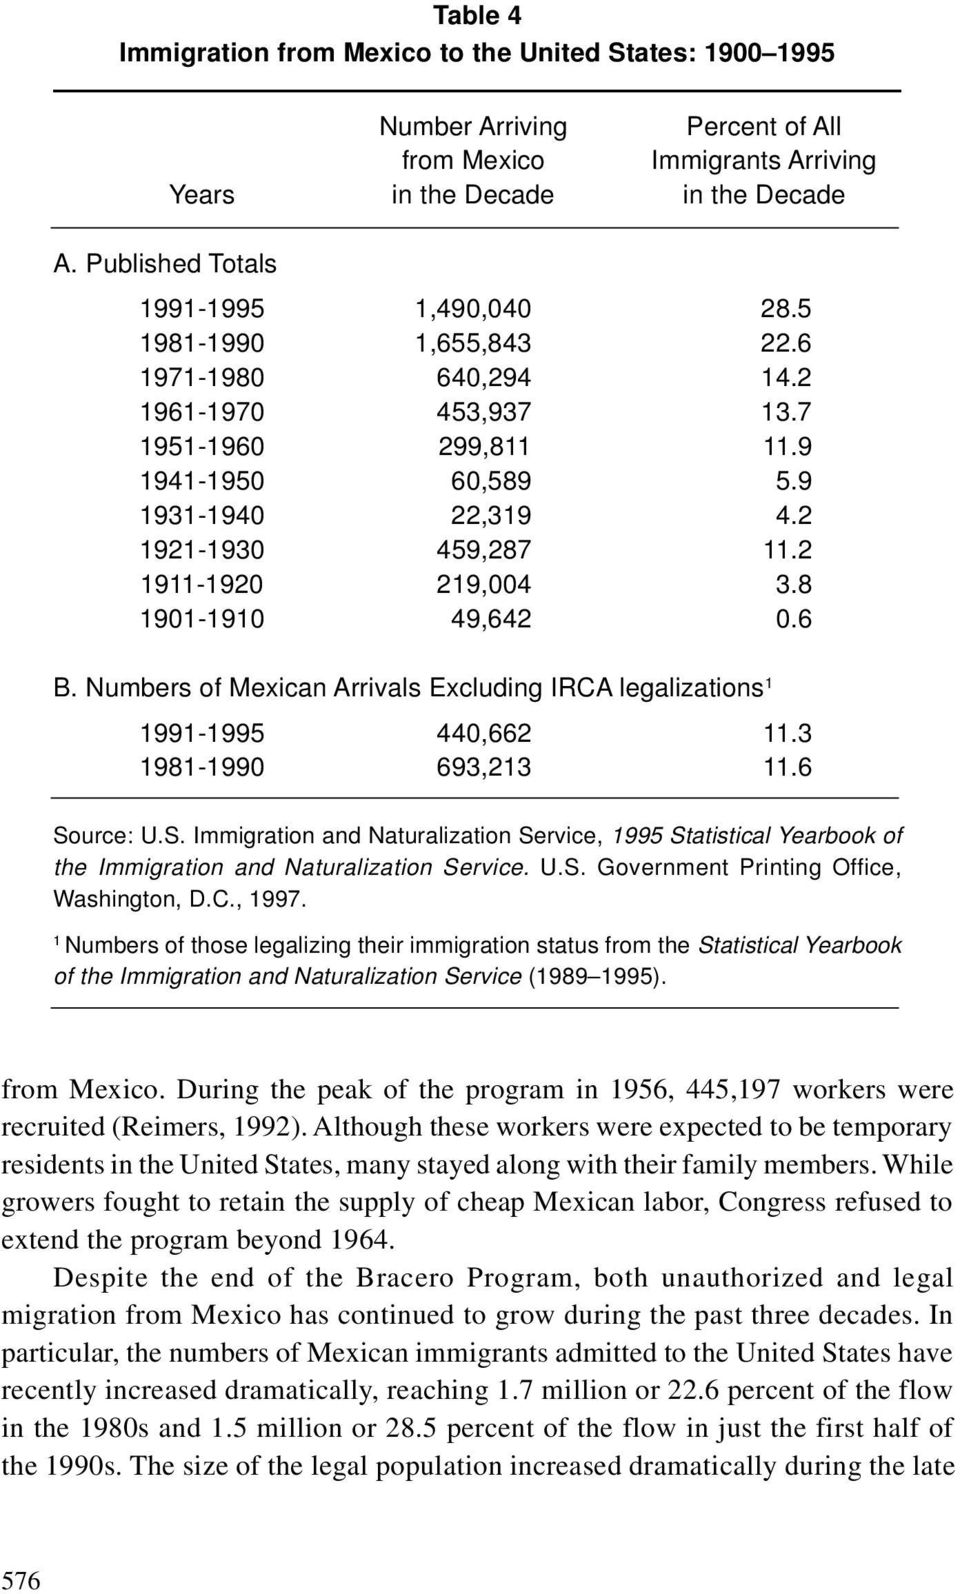 2 1911-1920 219,004 3.8 1901-1910 49,642 0.6 B. Numbers of Mexican Arrivals Excluding IRCA legalizations 1 1991-1995 440,662 11.3 1981-1990 693,213 11.6 So